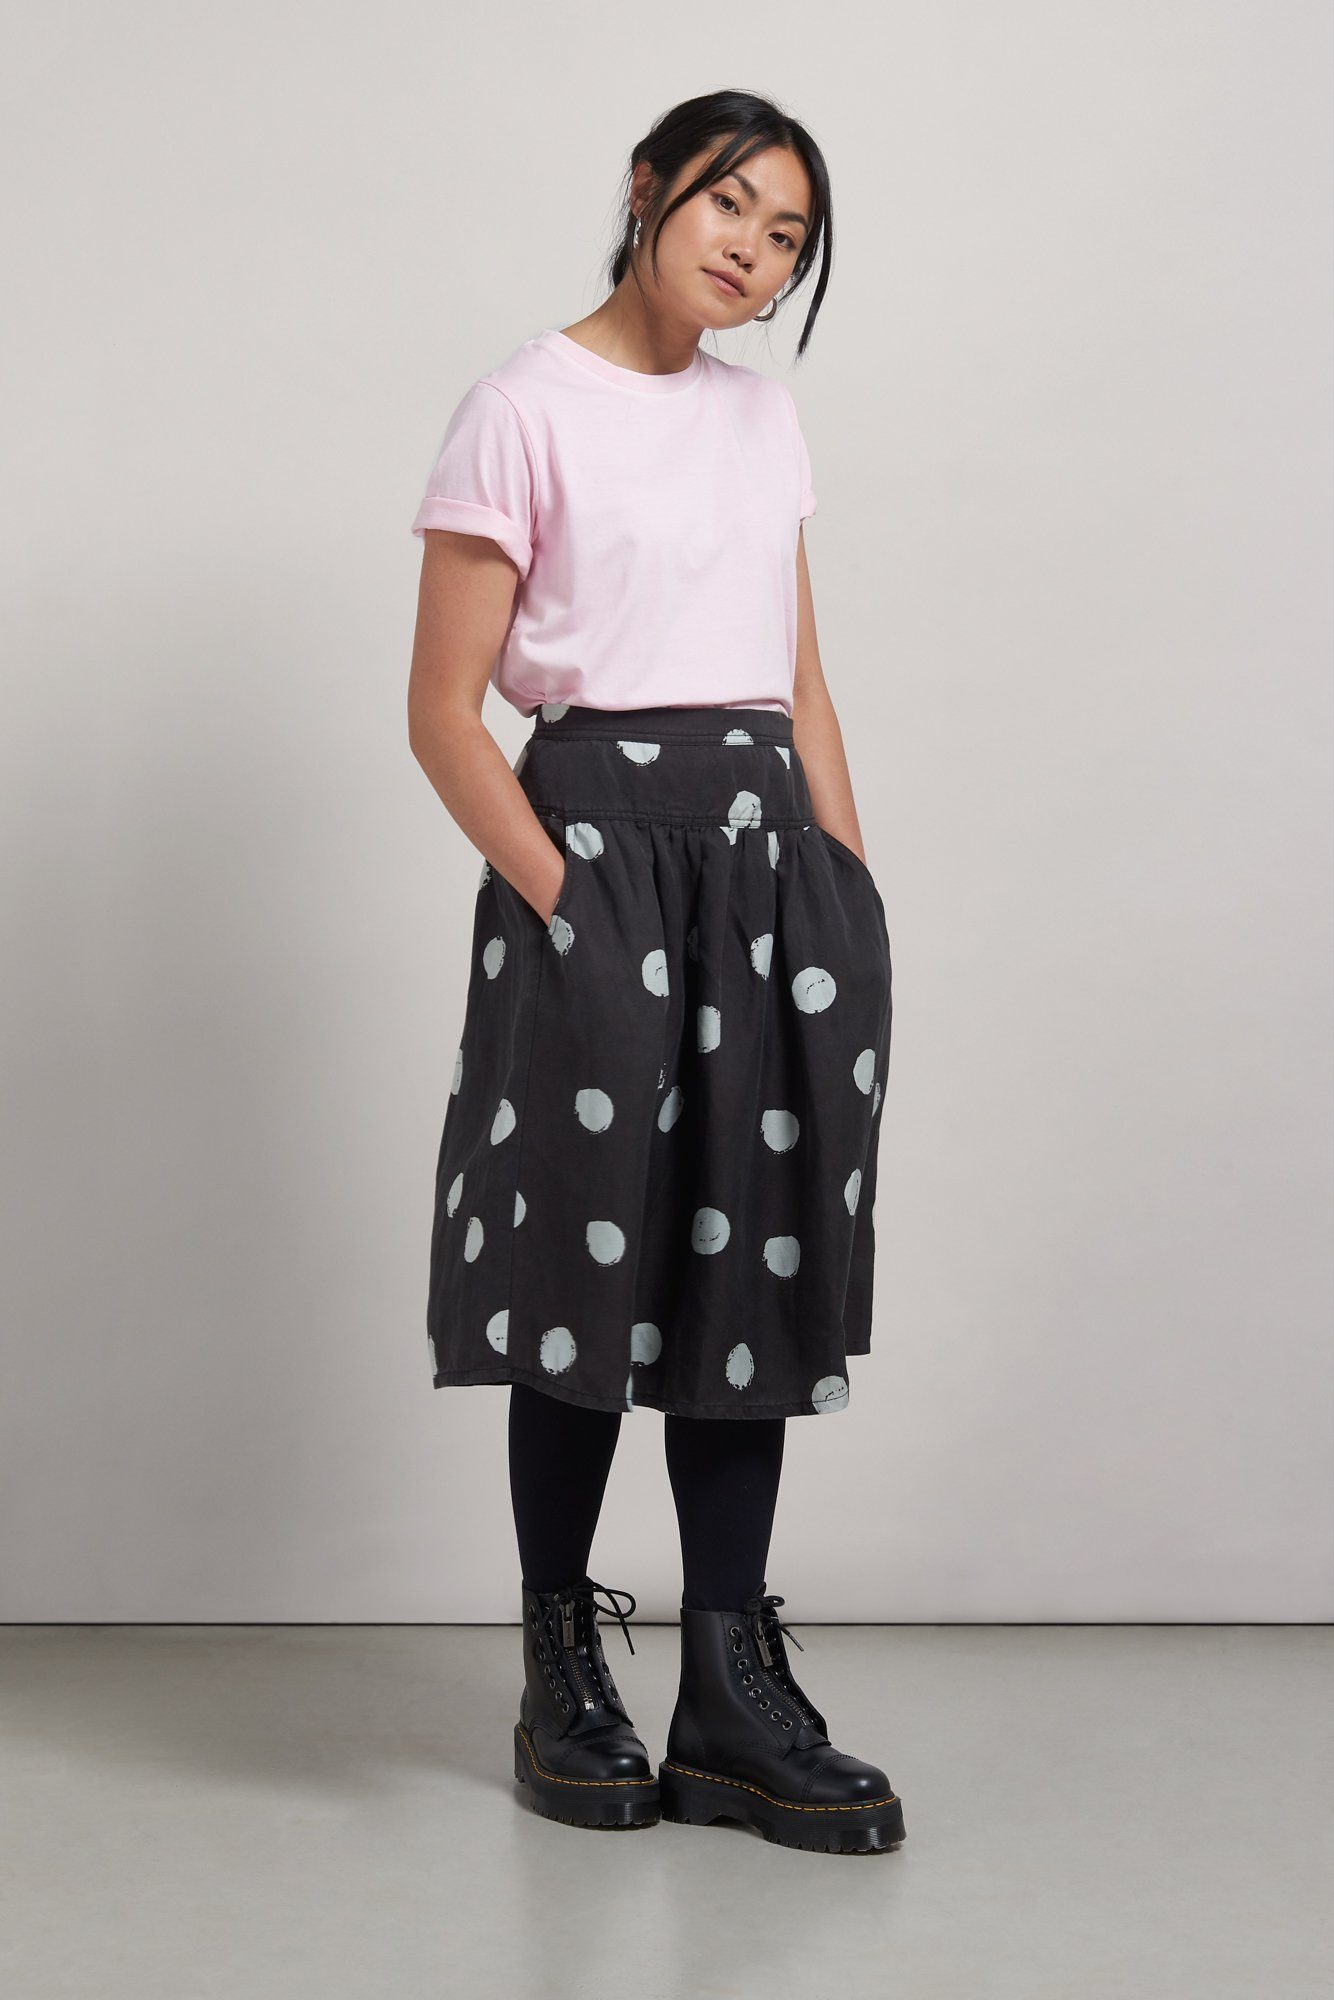 KUSAMA Tencel Linen Skirt - Komodo Fashion